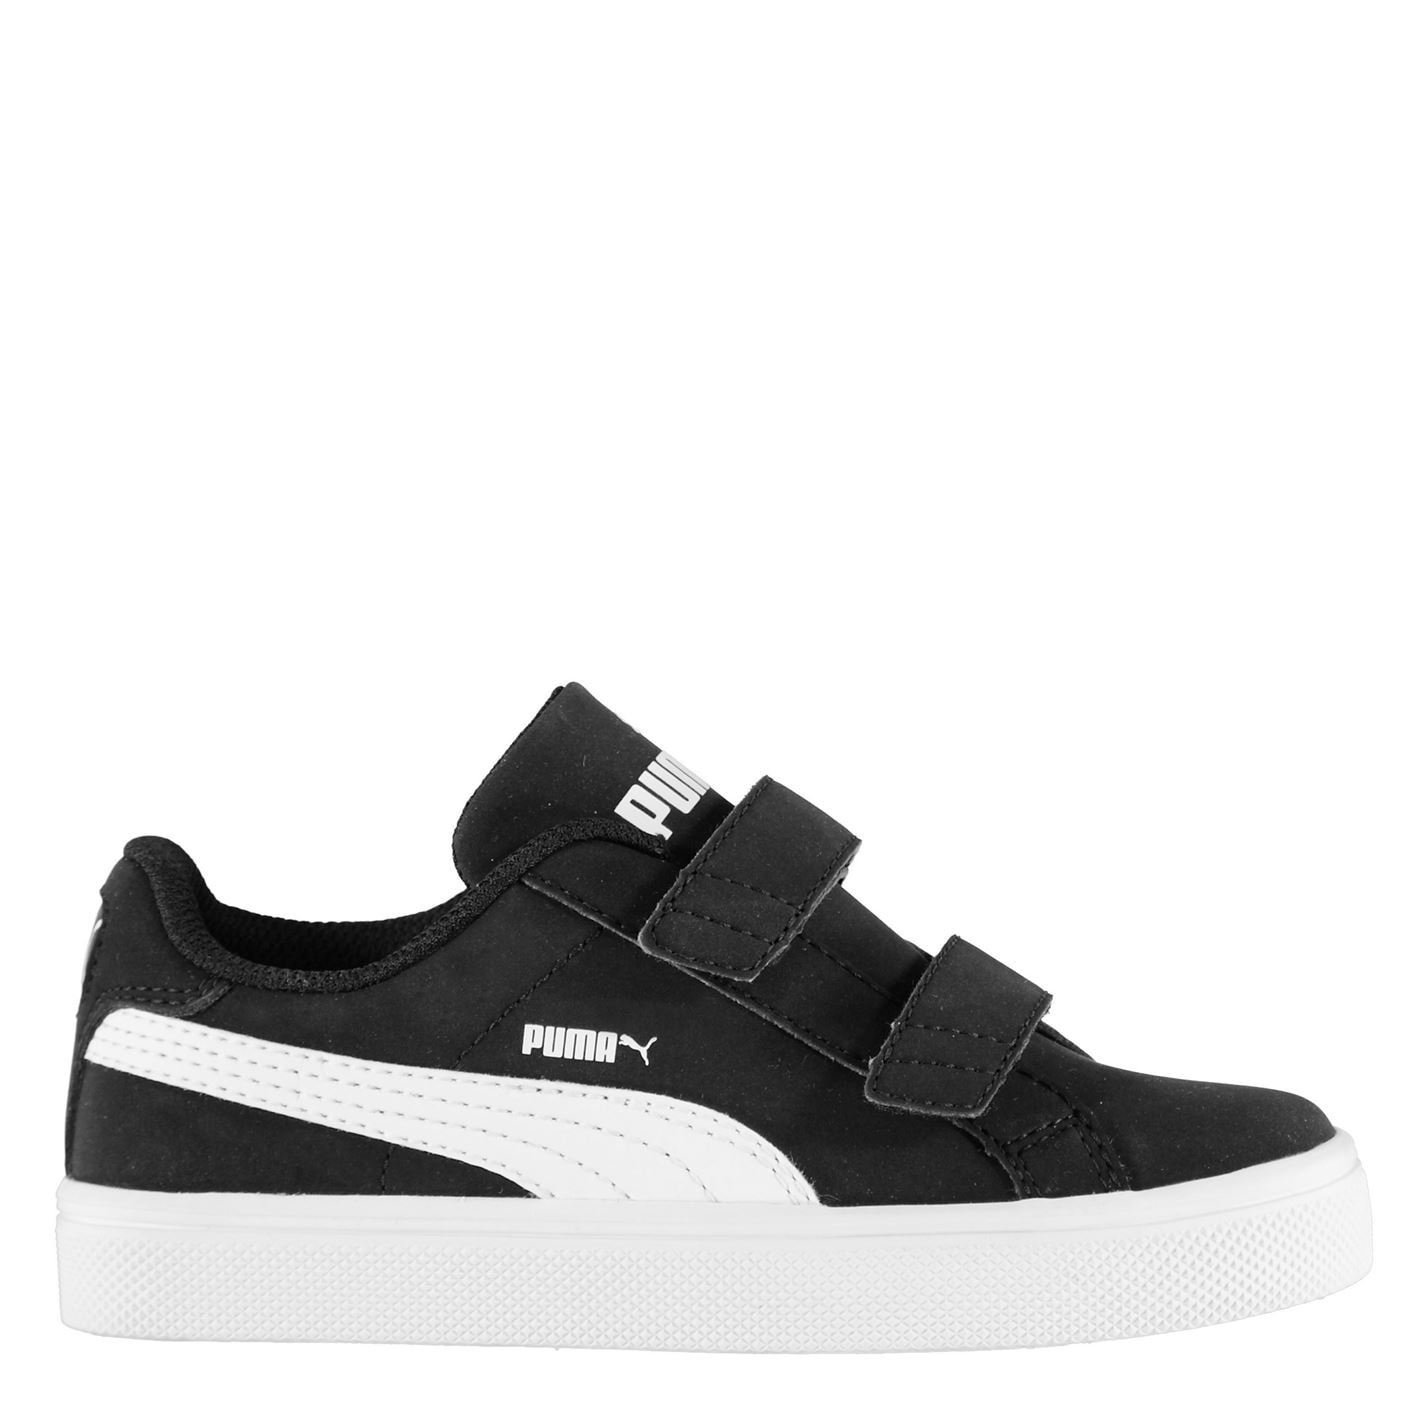 Puma Smash Vulc Infant Boys Trainers Black/White